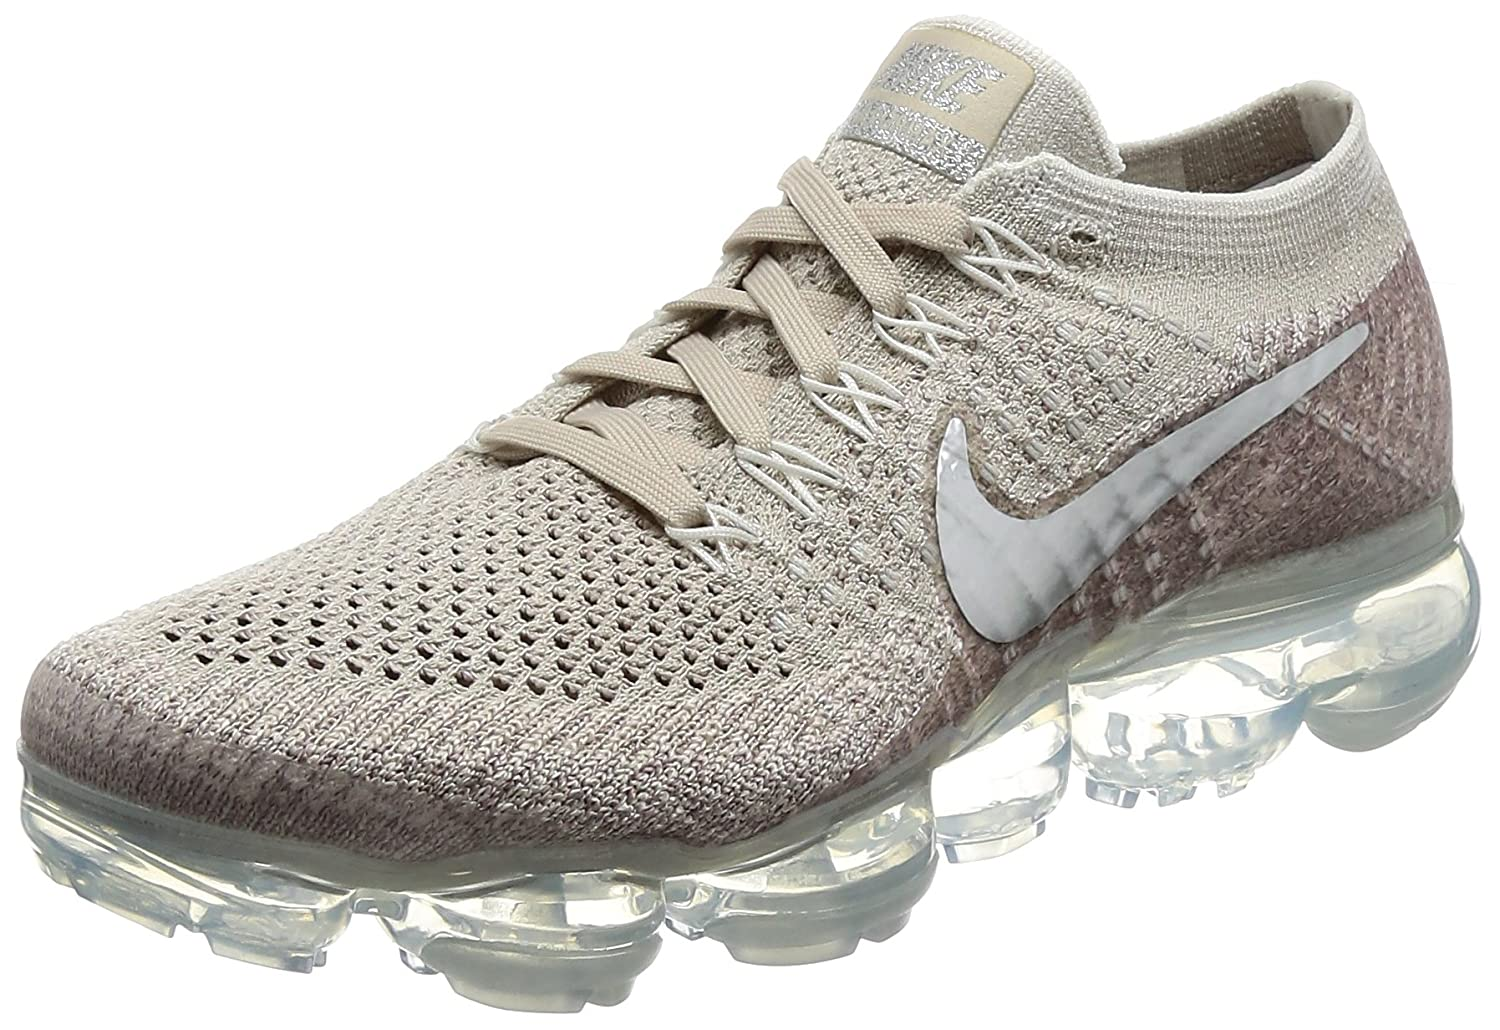 new product 26bf0 13de9 Amazon.com | Men's Nike Air Vapormax Flyknit Running Shoe | Fashion Sneakers